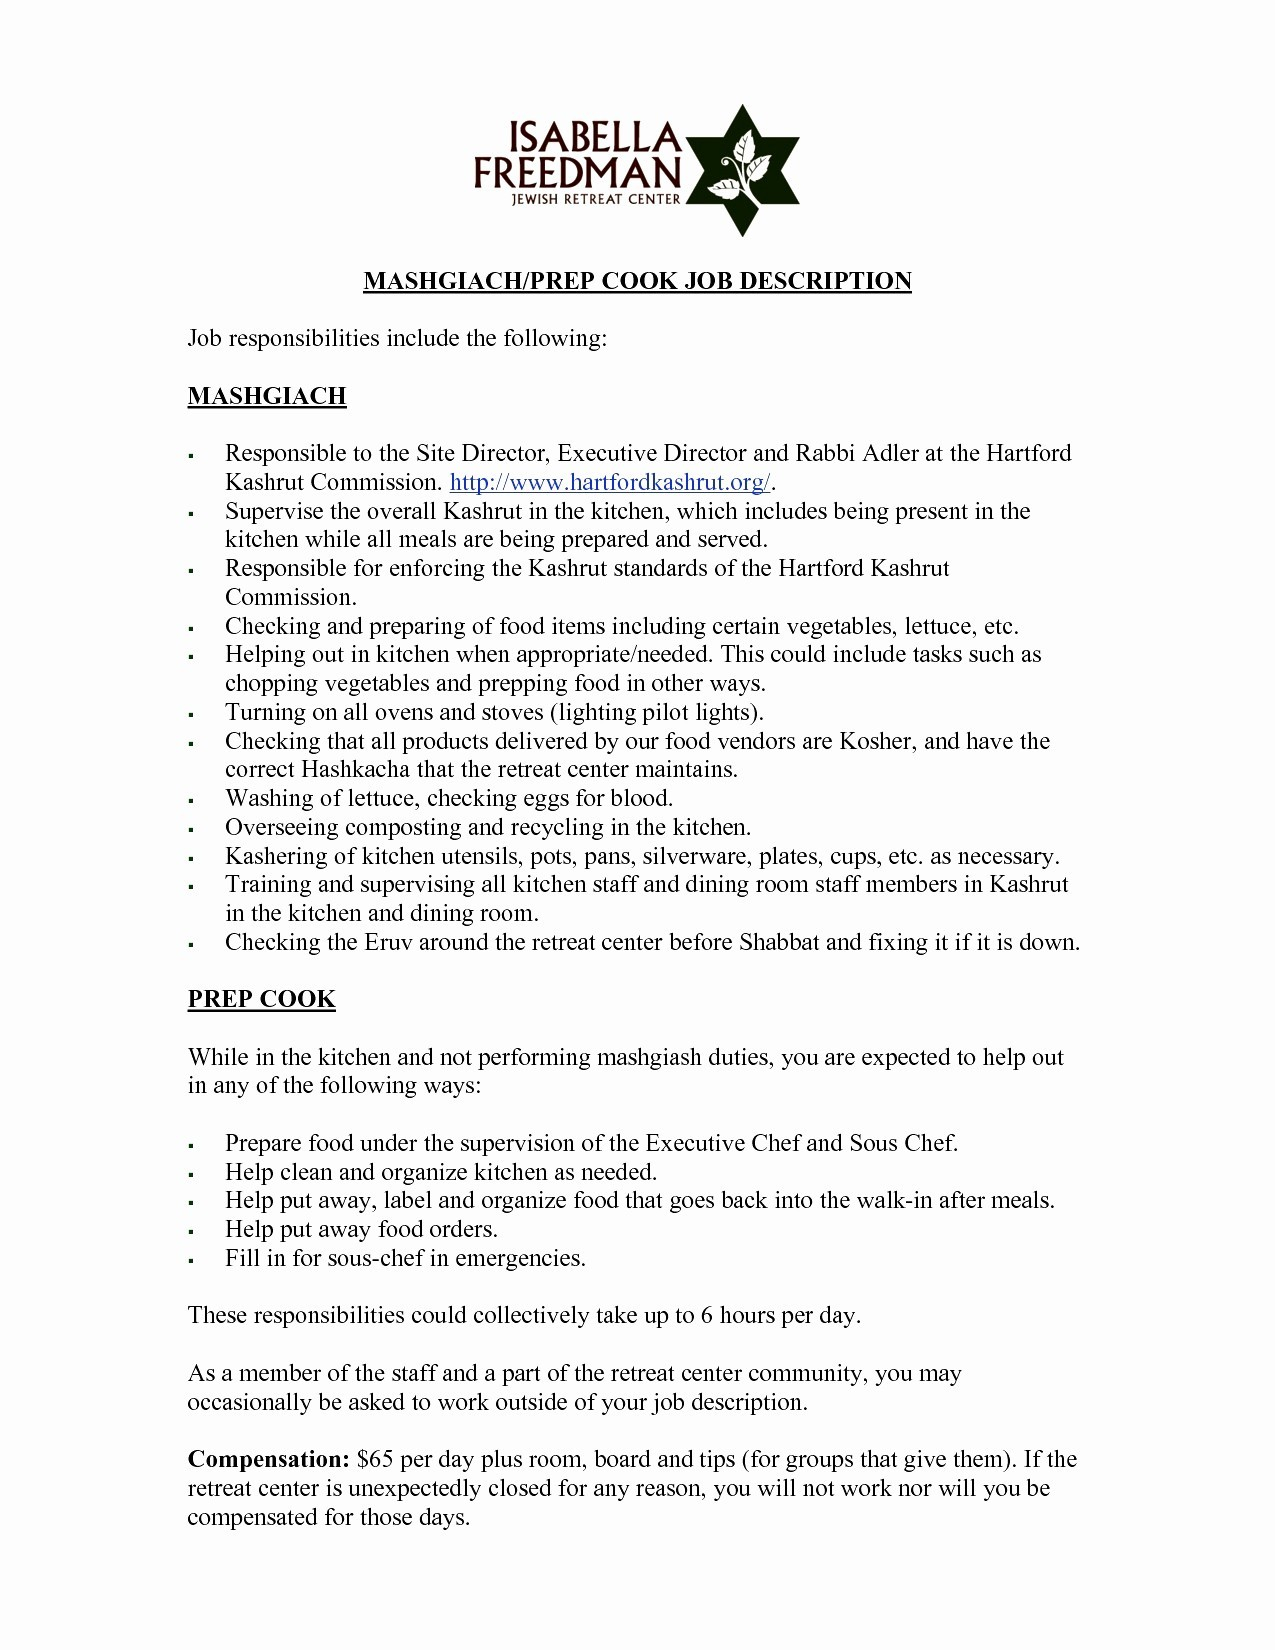 Resume for Collections Specialist - Collection Specialist Save 11 Present Credit and Collection